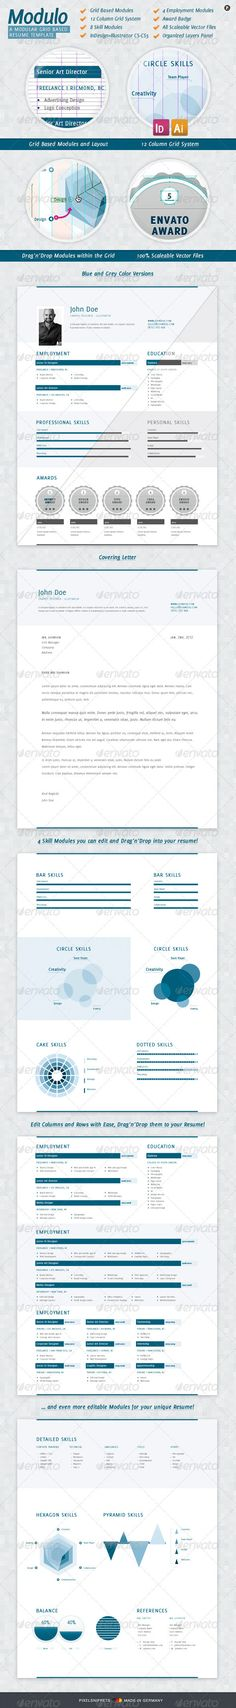 Resume Modulo: Clean Column Grid Resume Template - #Resumes Stationery Download here: https://graphicriver.net/item/modulo-clean-column-grid-resume-template/1495822?ref=alena994